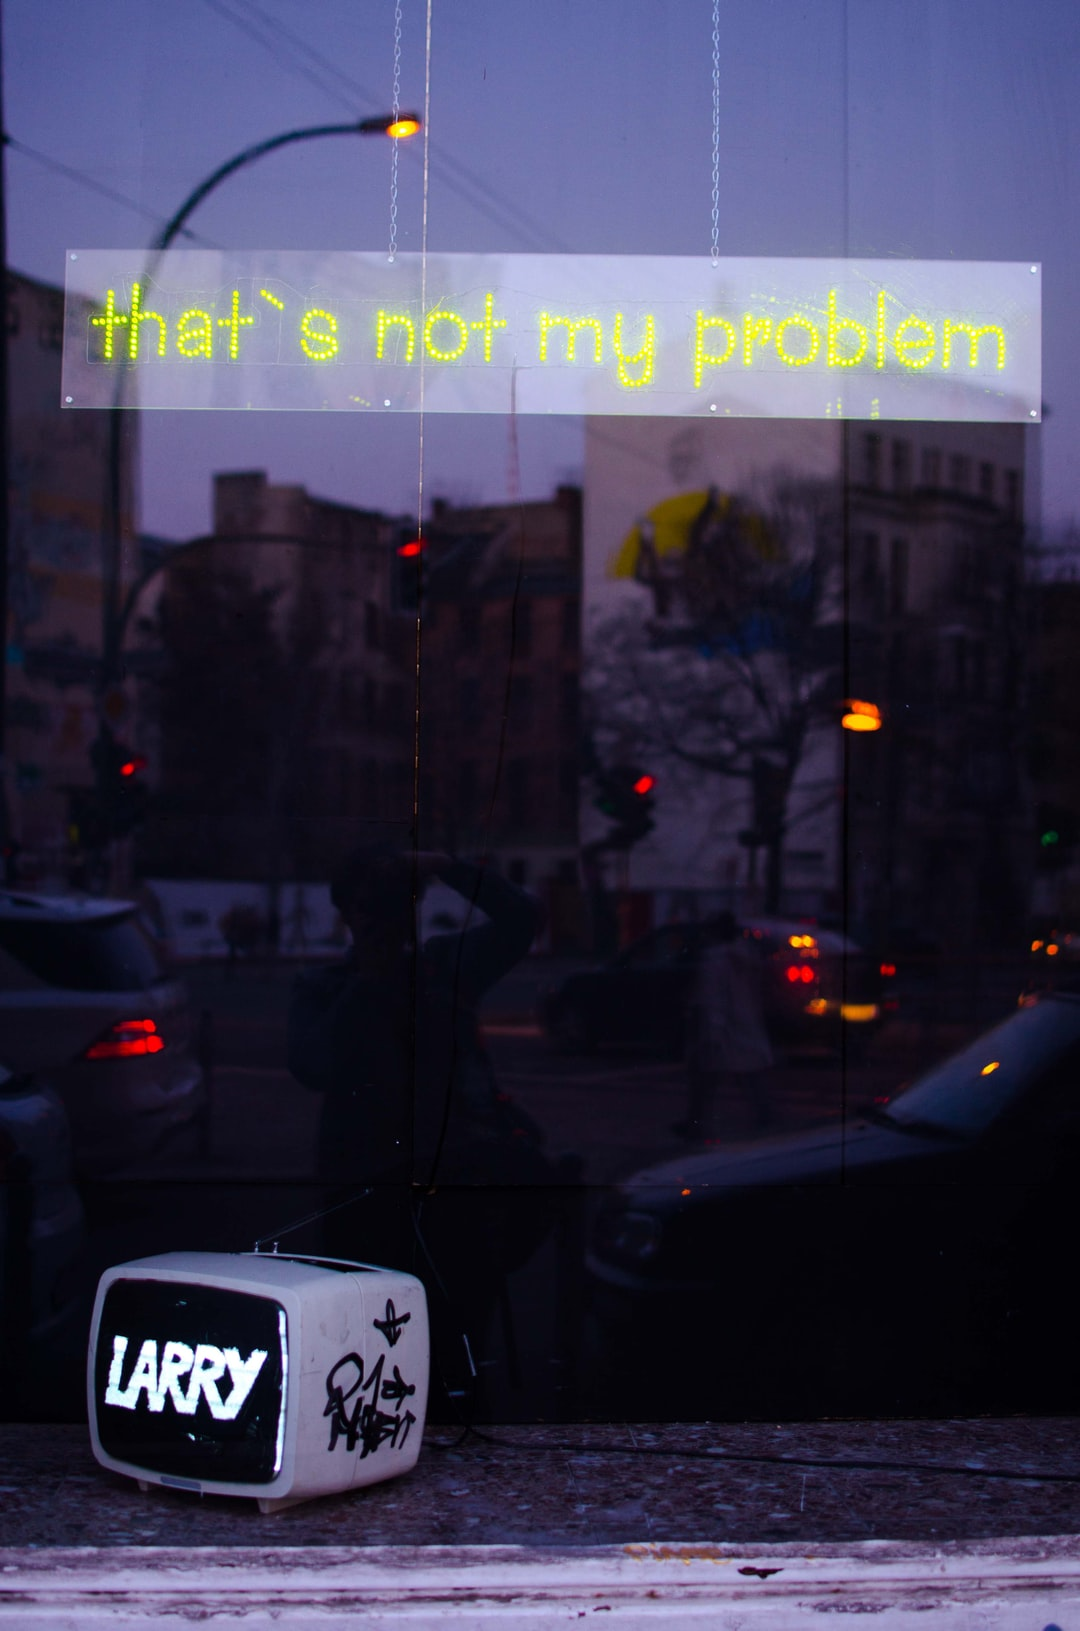 Taken during a lazy walk on a solo trip to Berlin. What captured me is the purple glow and yellow neon sign.